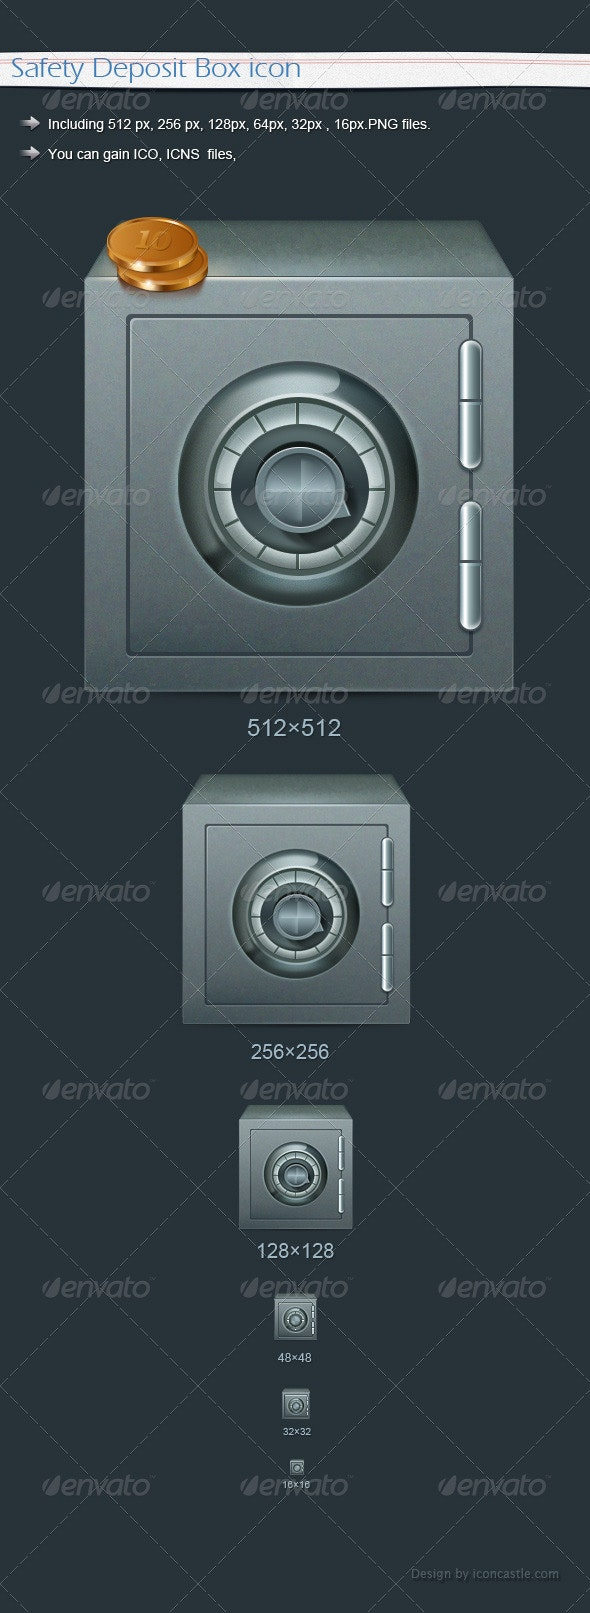 Safety Deposit Box icon - Software Icons